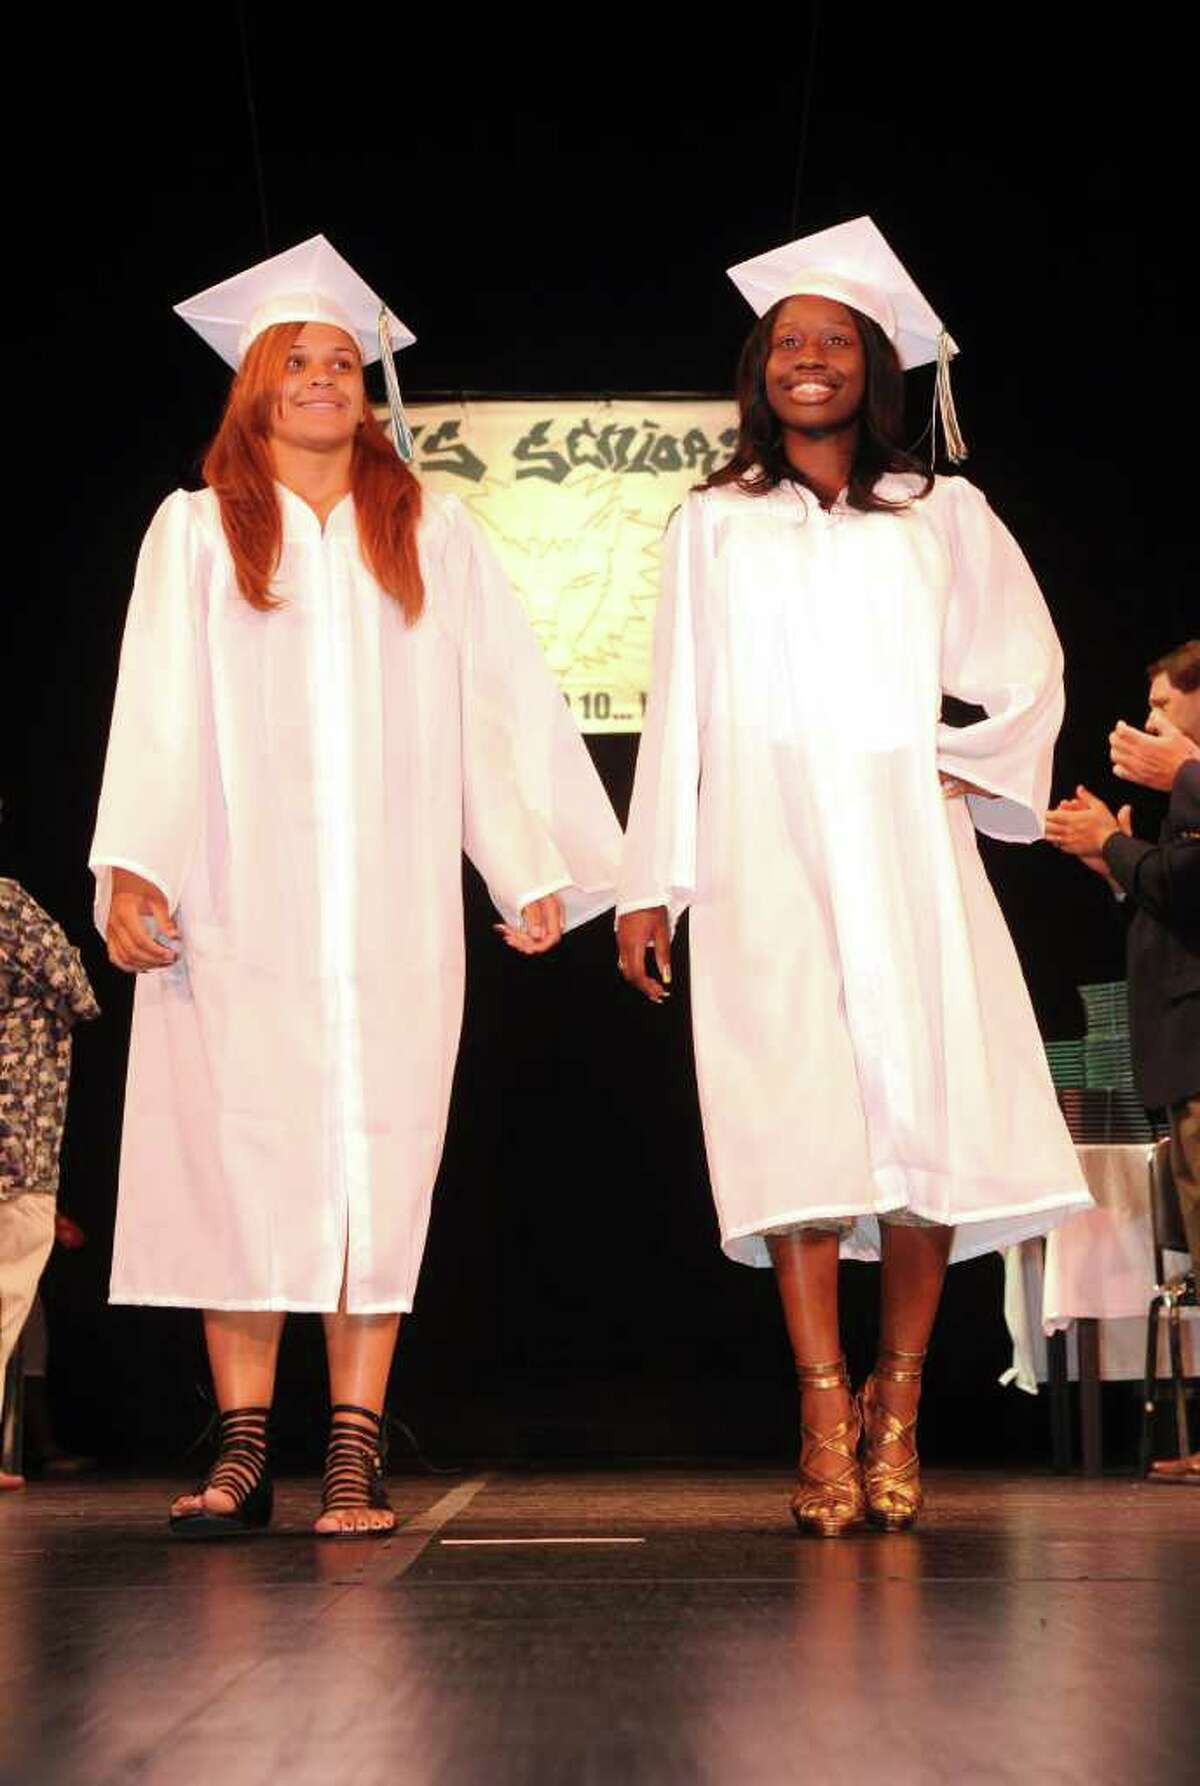 Students walk across the stage in the processional during Bassick High School's graduation ceremony at Klein Memorial Auditorium on Tuesday, June 21, 2011.